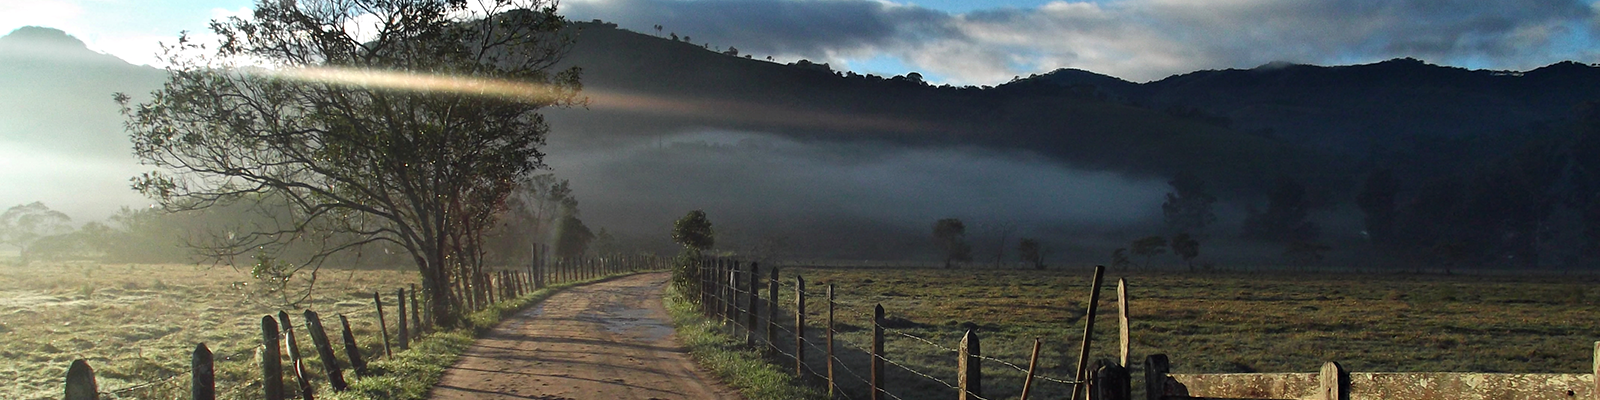 Photo from the First Photography Contest – PPGADR – Your Look on the Environment. Country paths. Ednilson M. de Lima e Silva. Dirt road. On the sides, wooden-and-wire fences. A gate on the right side and a few trees on the left. In the background, fog and a hill.